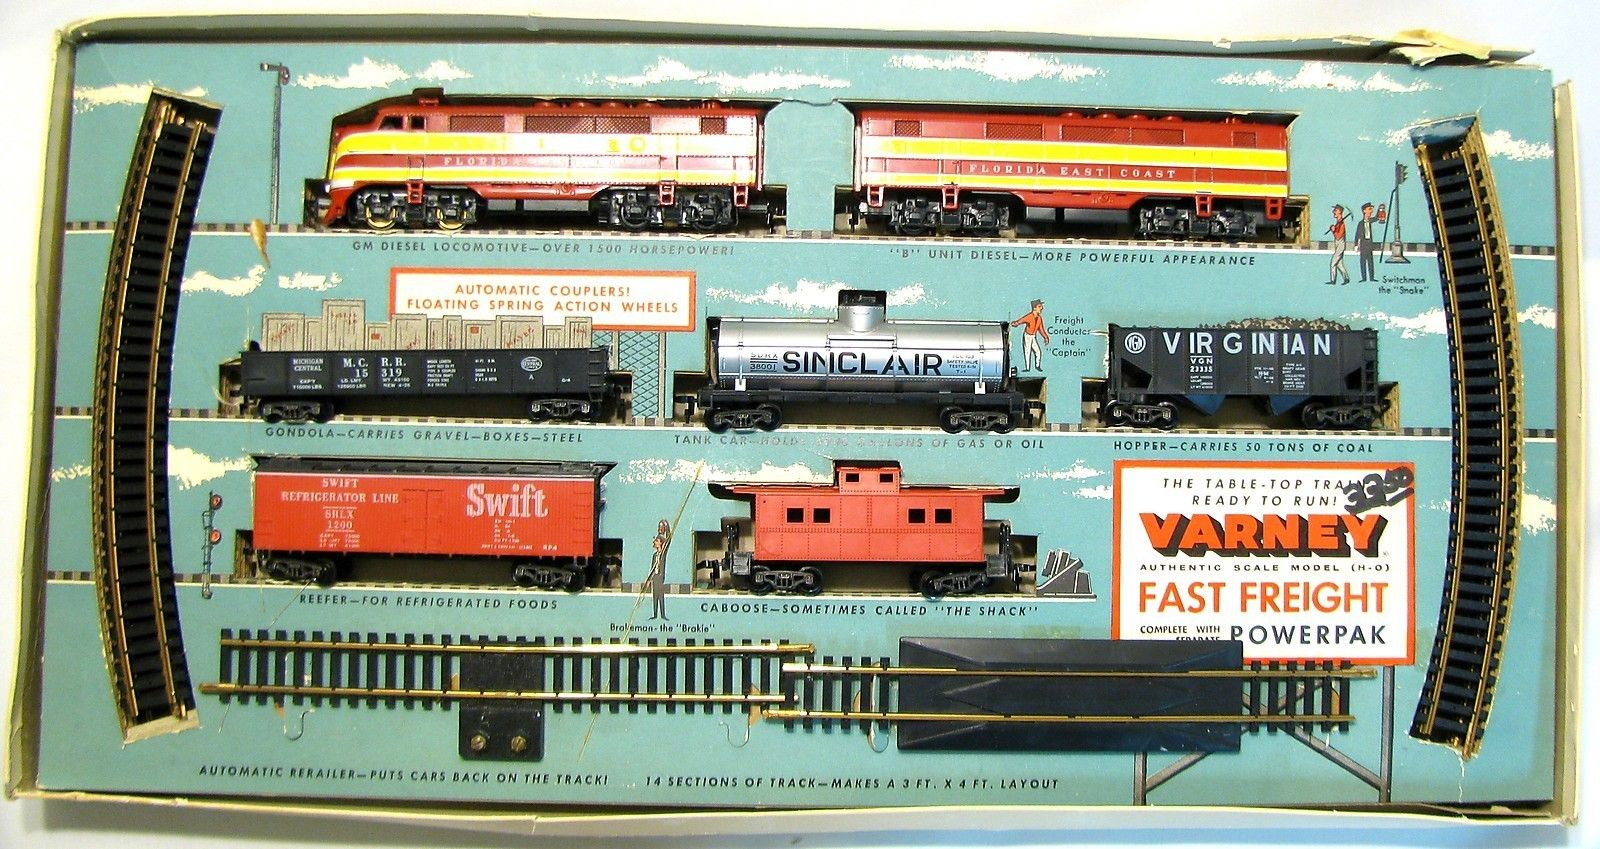 Varney Fast Freight 43 Ho Scale Boxed Table Top Ready To